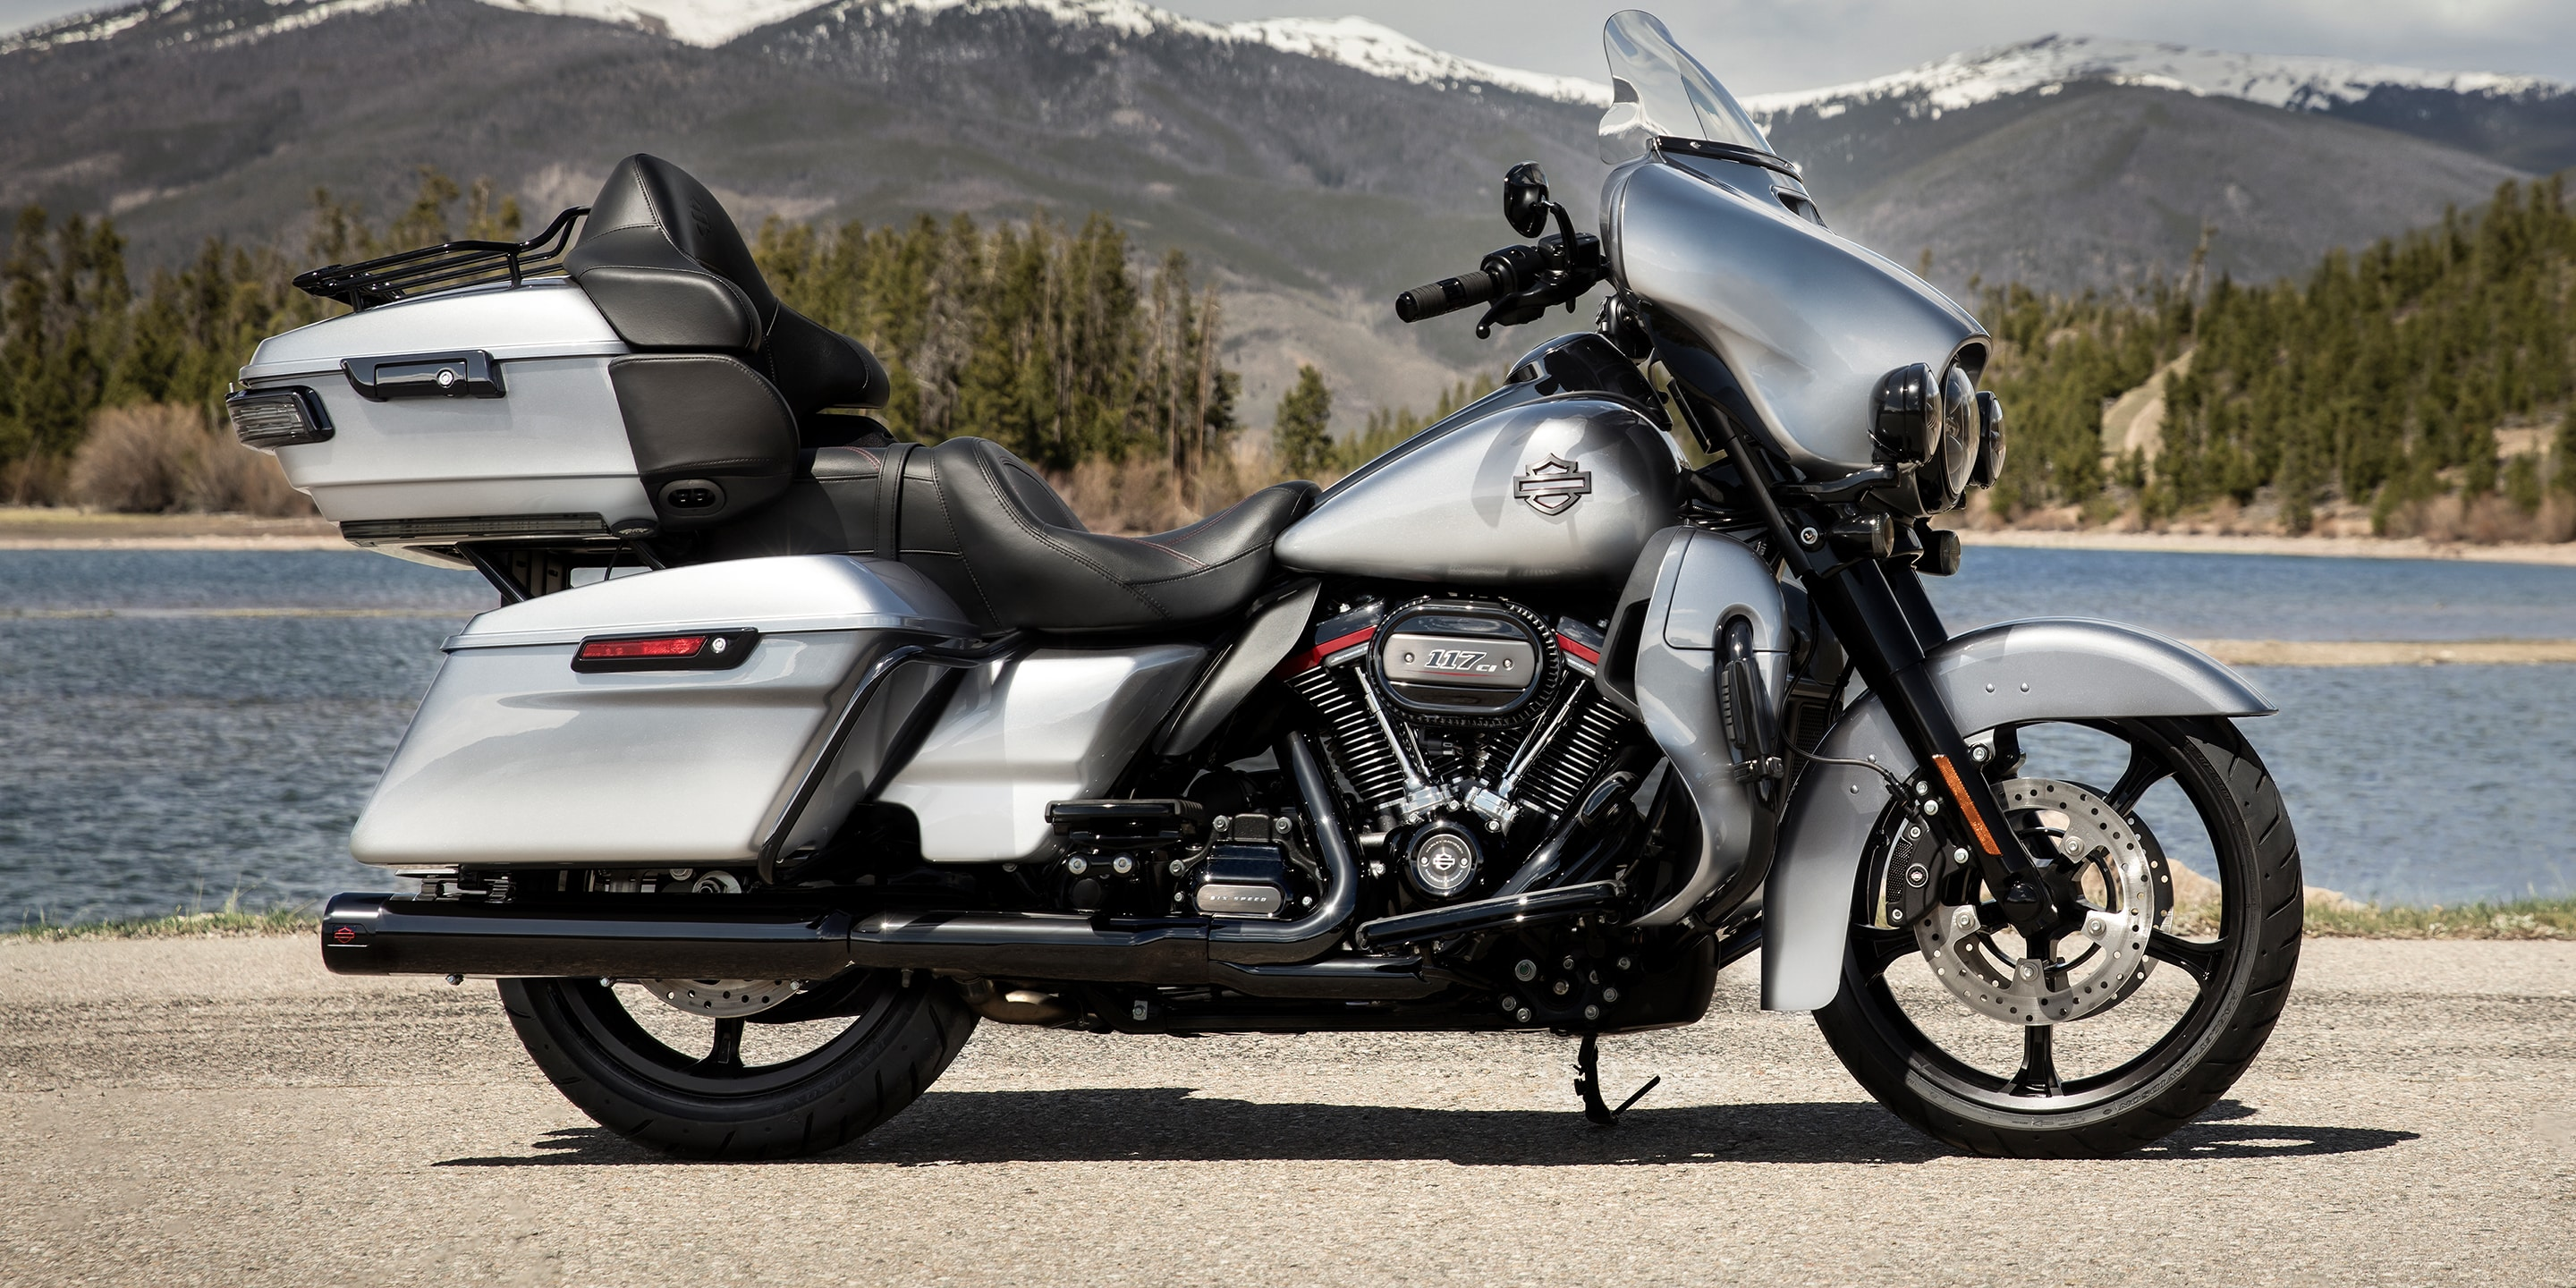 2019 CVO Limited Motorcycle